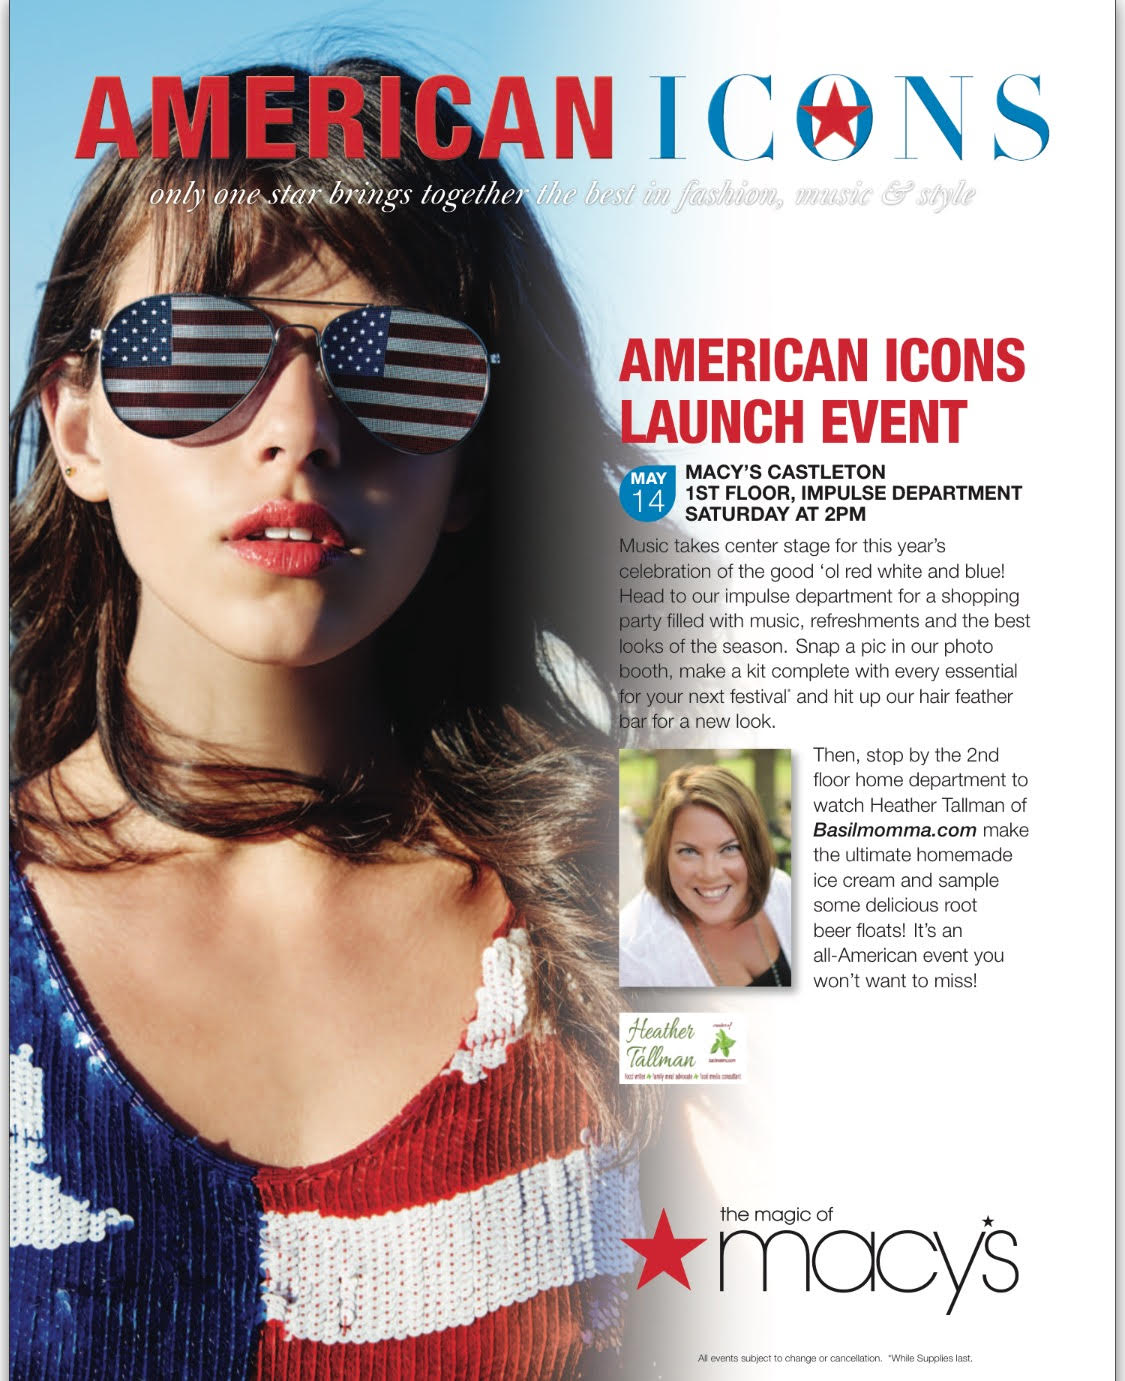 Macy's American Icons Home Event Castleton #AmericanIcons #MacysLove